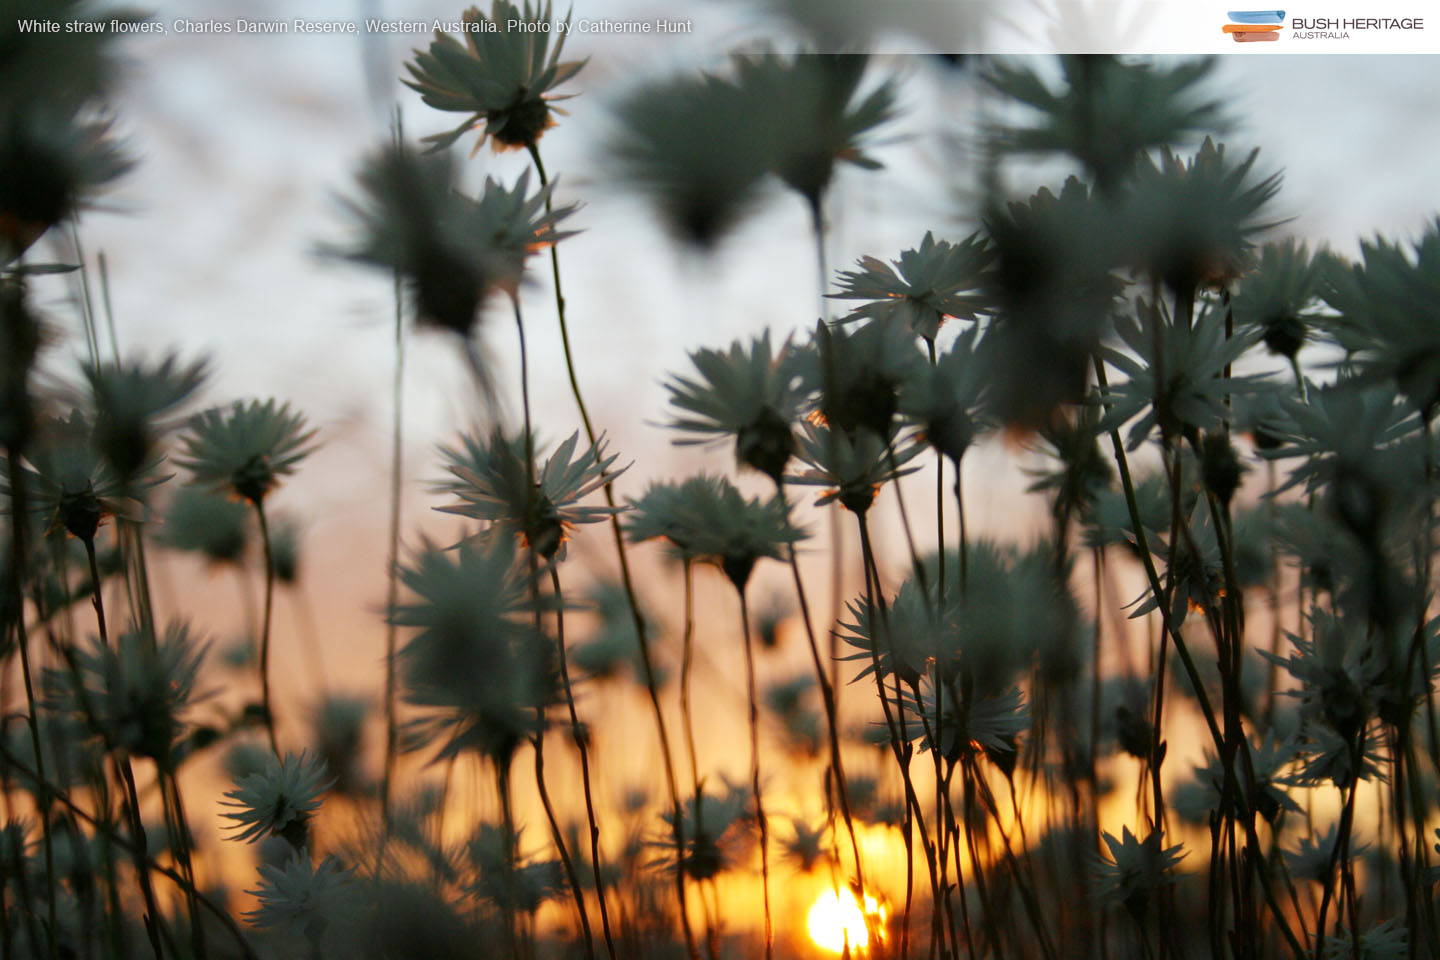 Straw Flowers at sunset on Charles Darwin Reserve, Western Australia